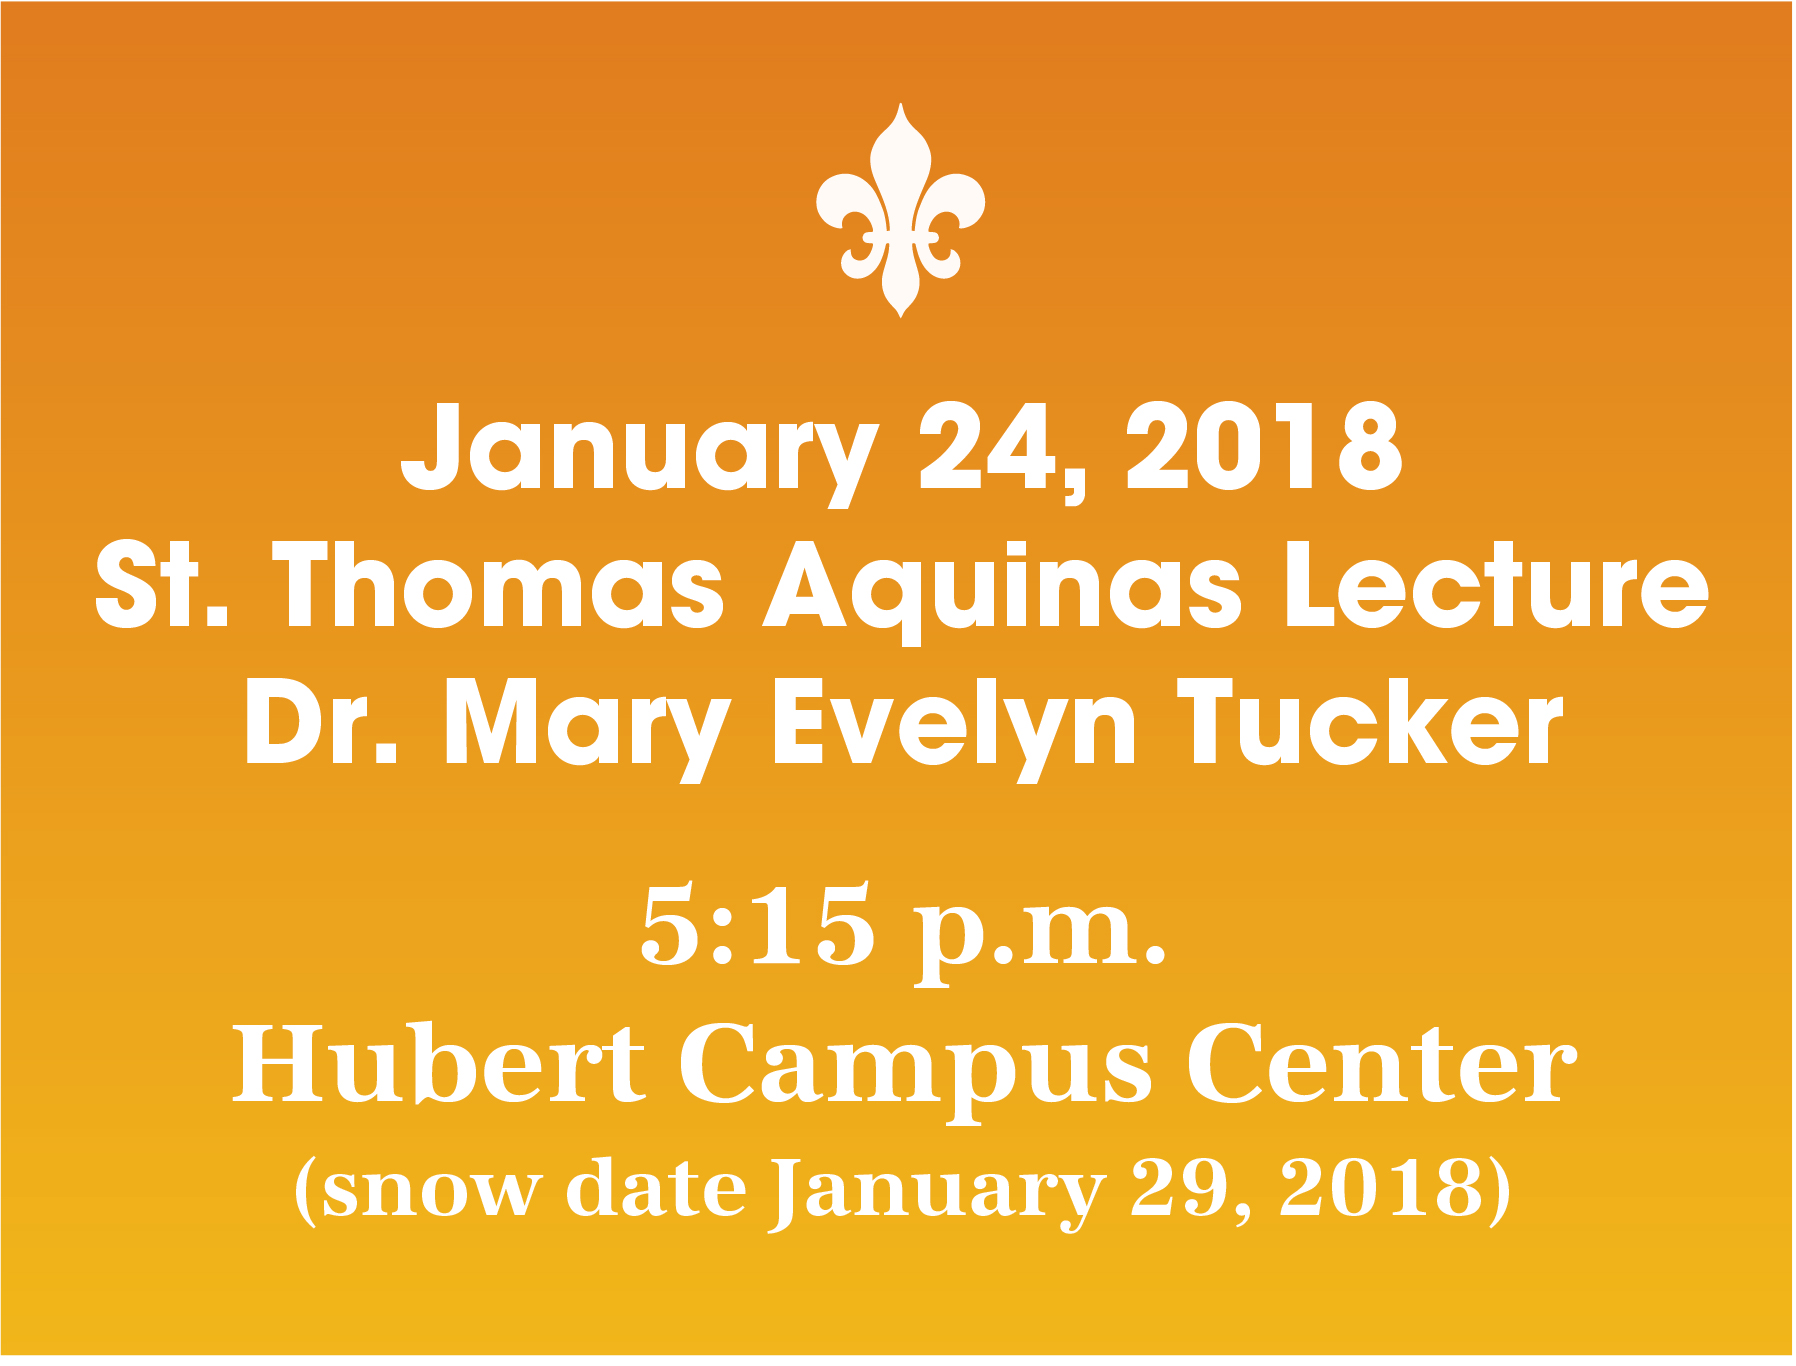 St. Thomas Aquinas Lecture Dr. Mary Evelyn Tucker